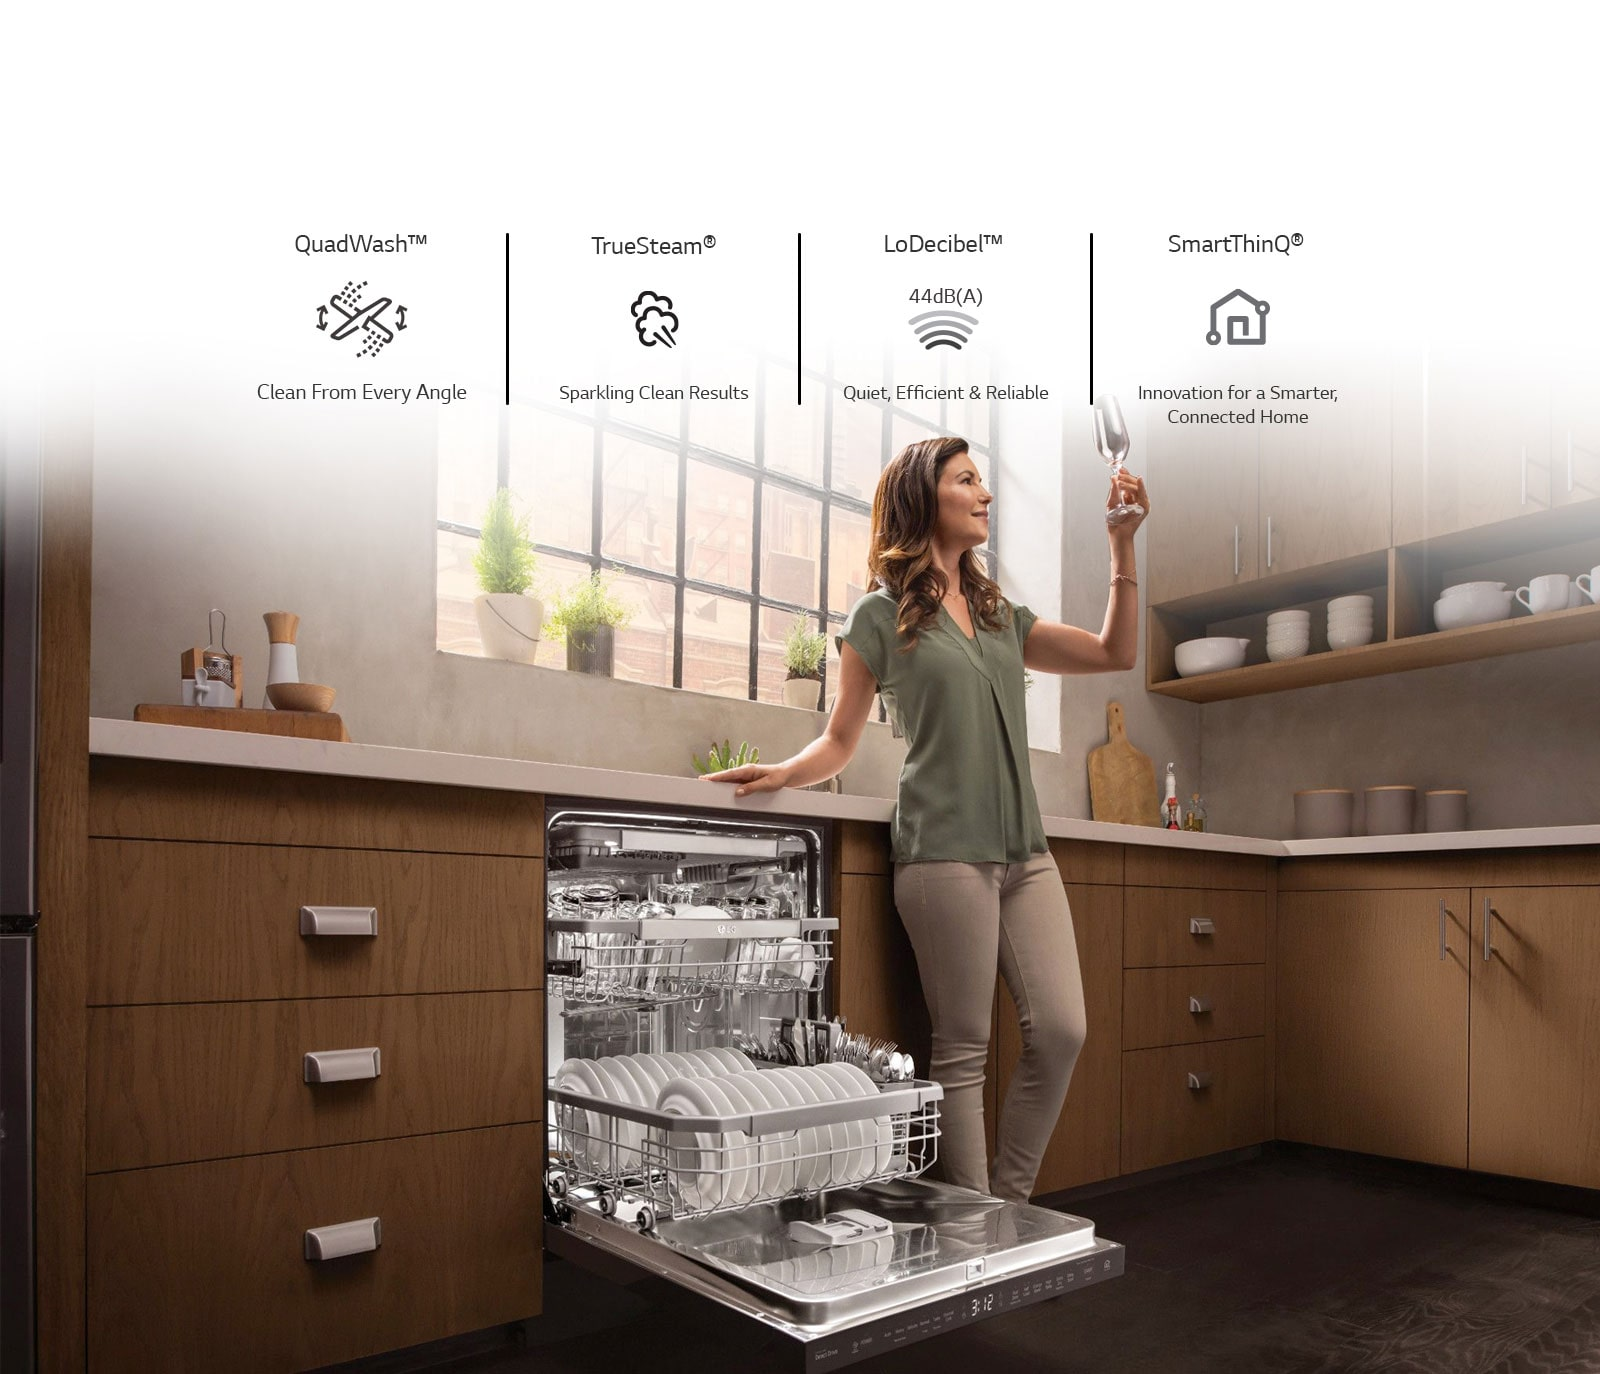 DFB425FP_Dishwasher_Four-Reasons-to-Buy-an-LG-Dishwasher_D